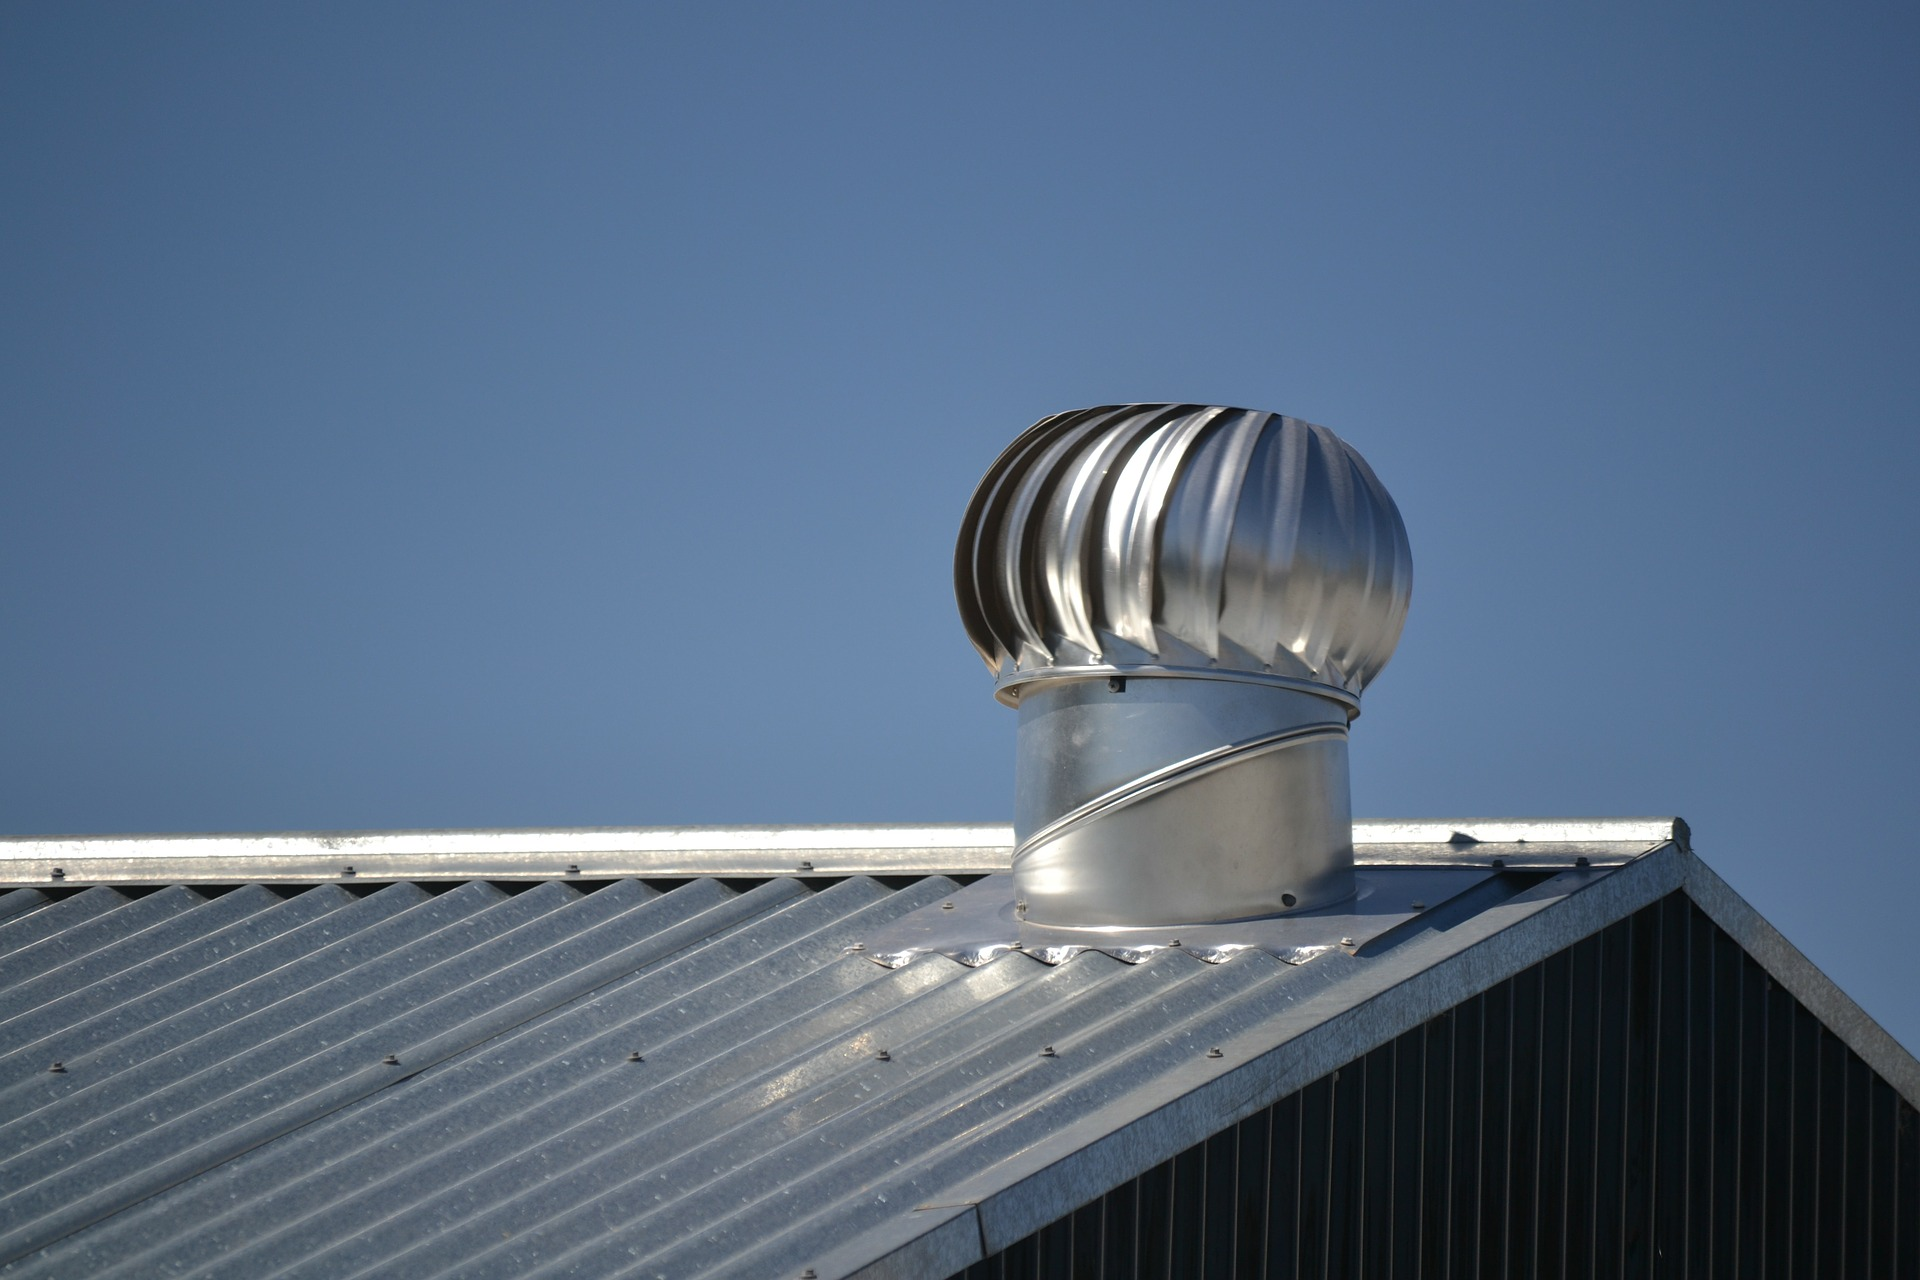 Paulding County Homes: What is a Turbine Roof Vent? - Georgi